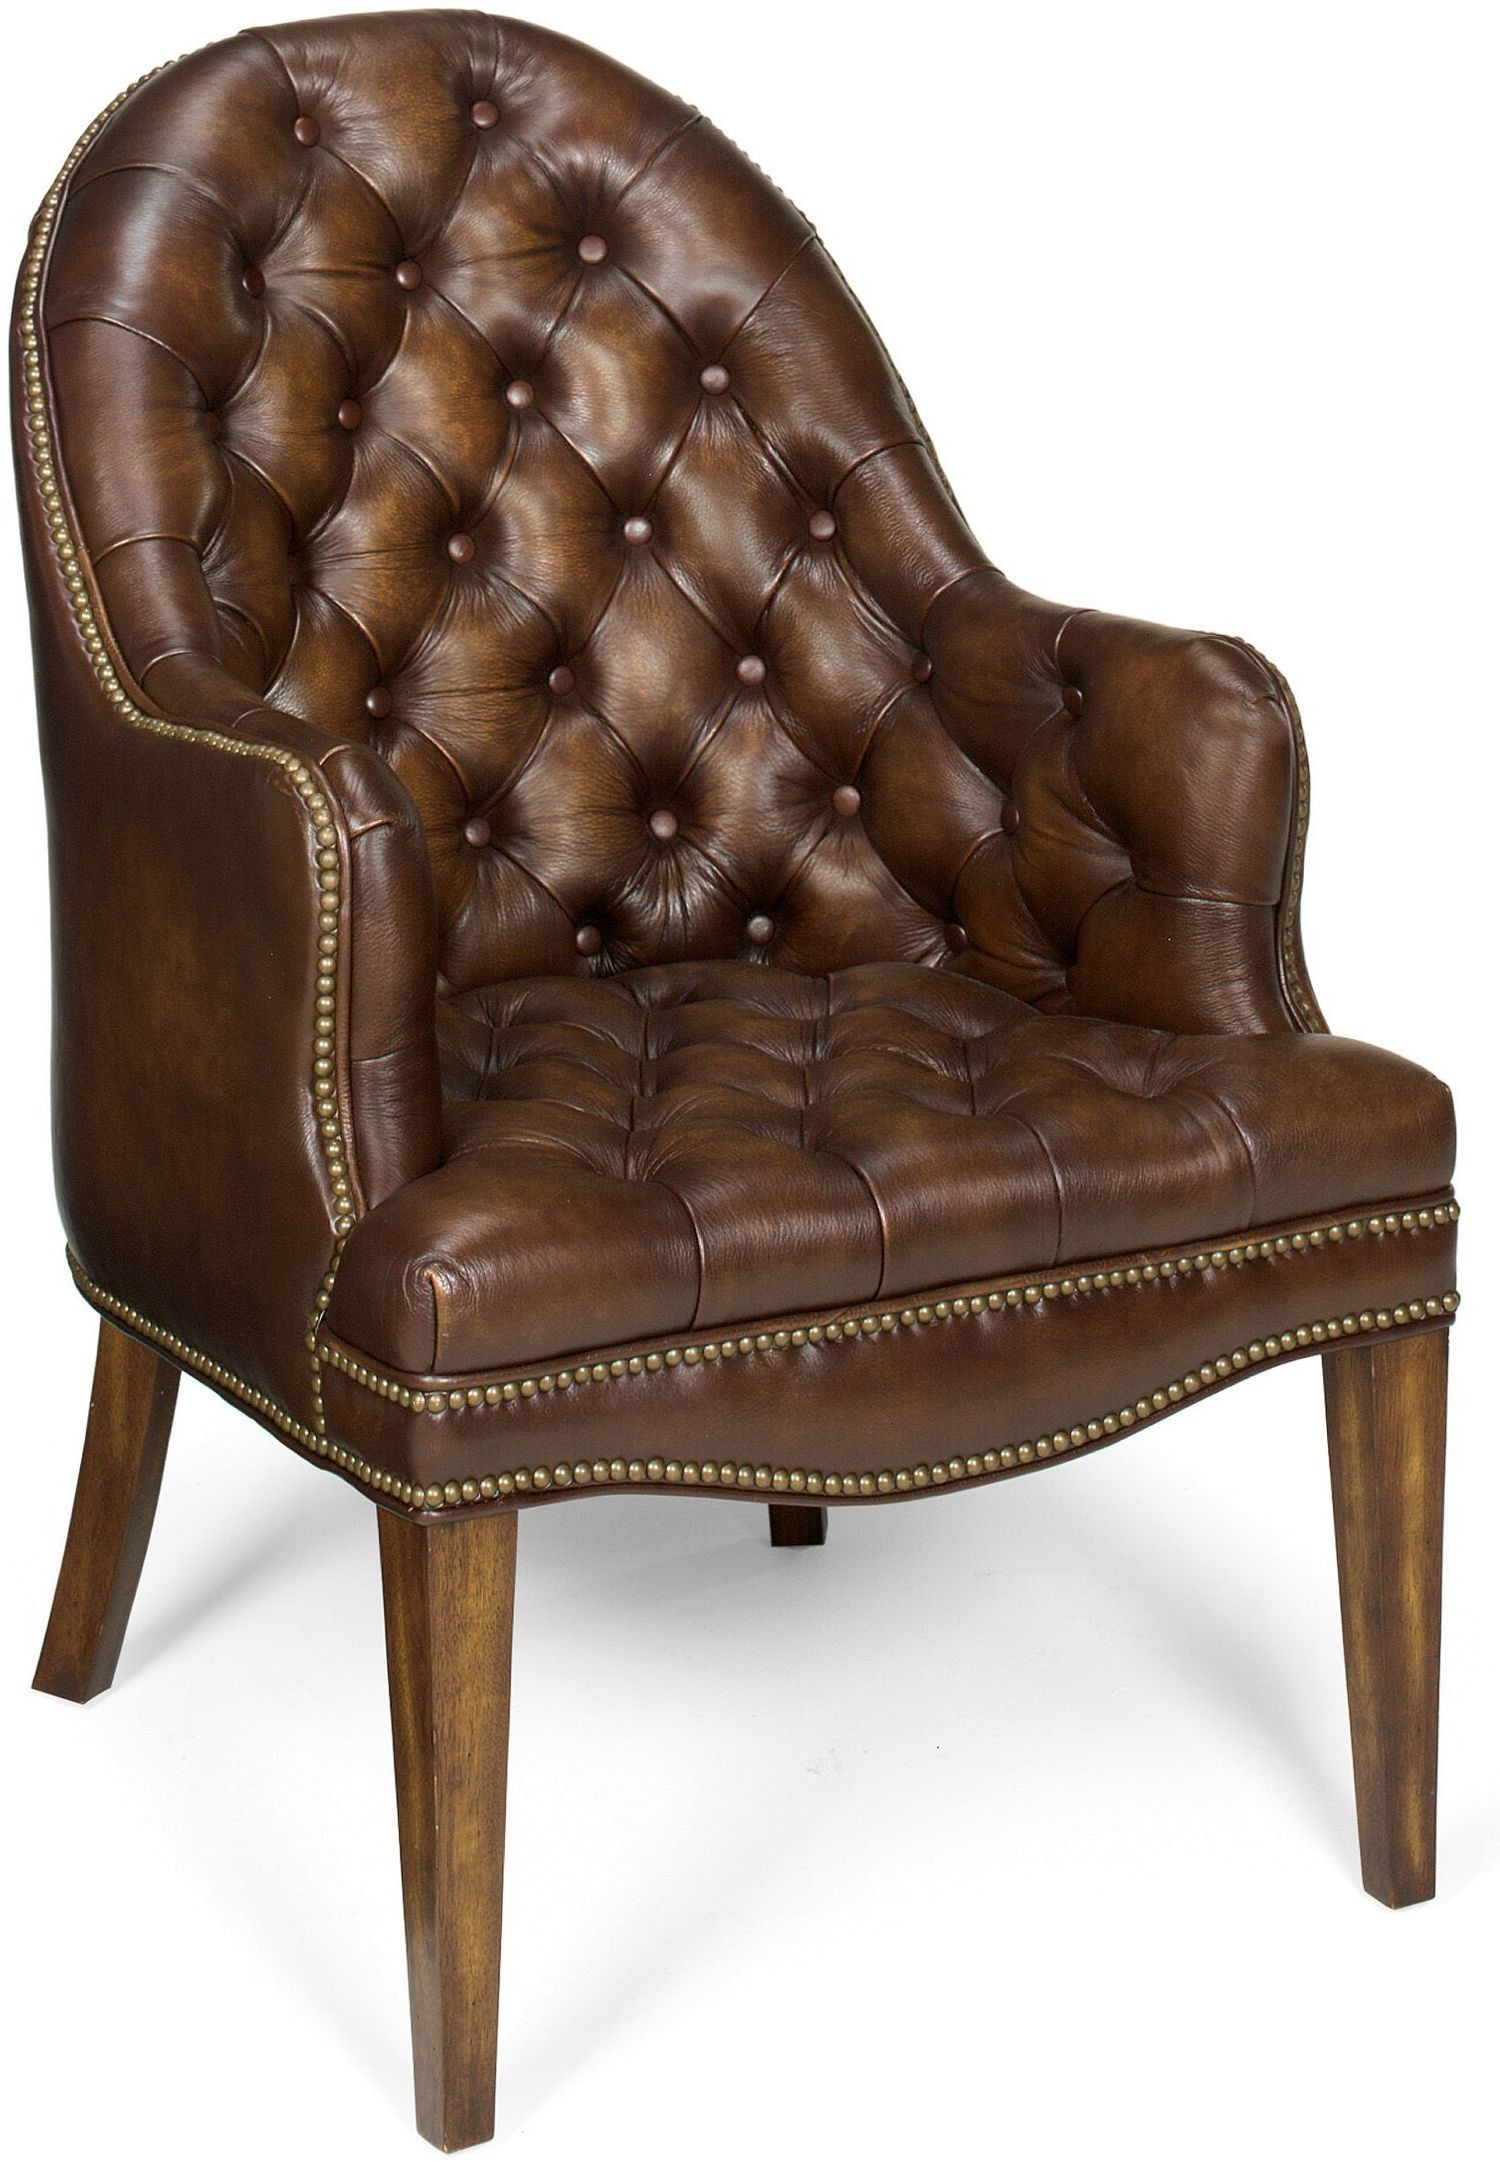 Remarkable Blarney Brown Leather Executive Side Chair Set Of 2 Pdpeps Interior Chair Design Pdpepsorg